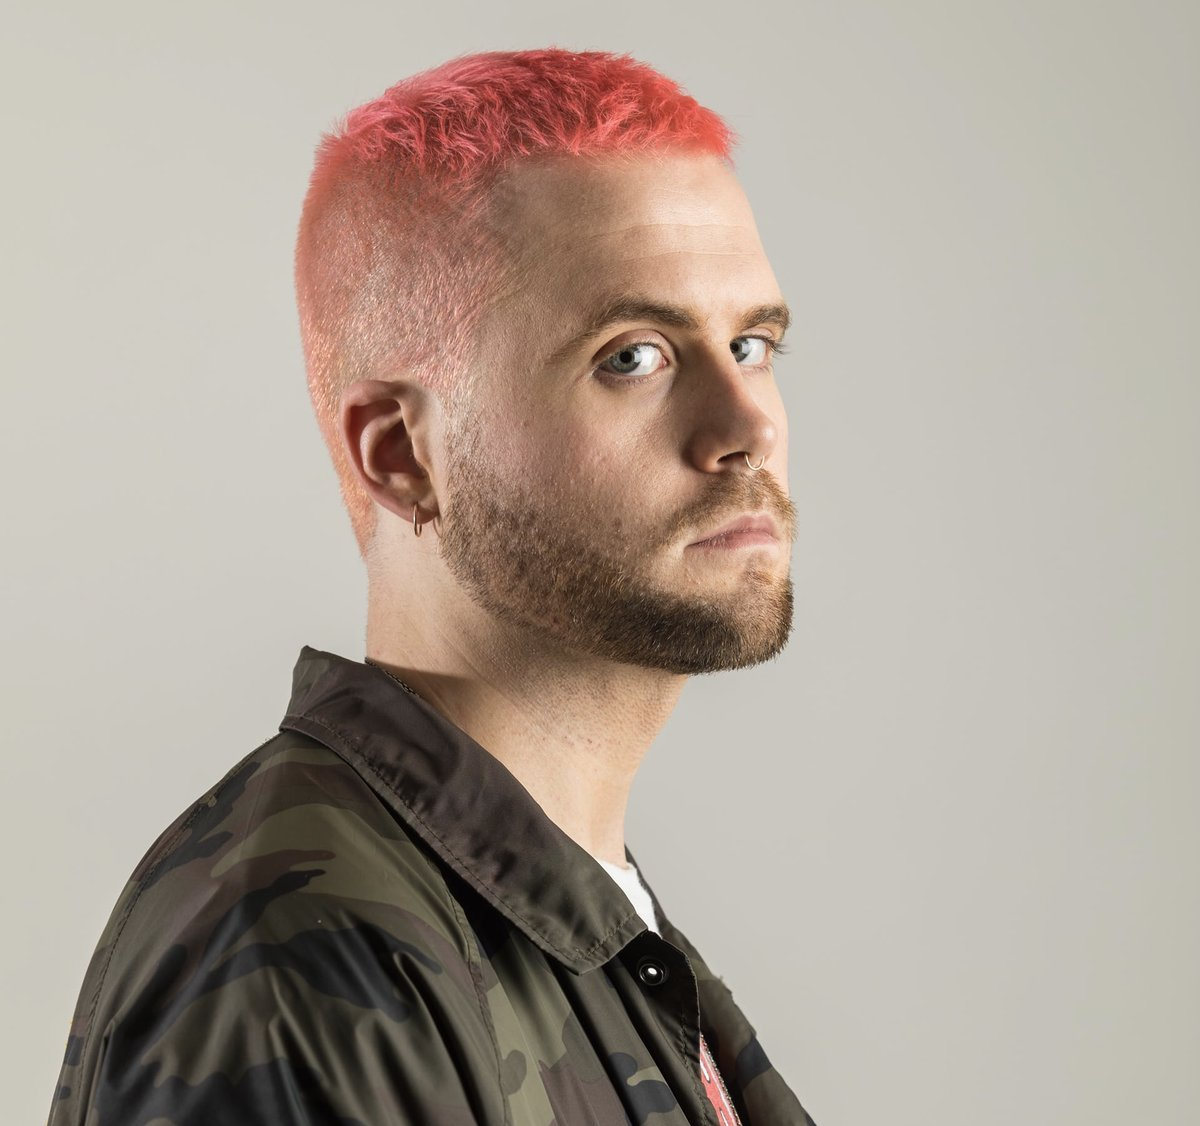 Cambridge Analytica whistleblower